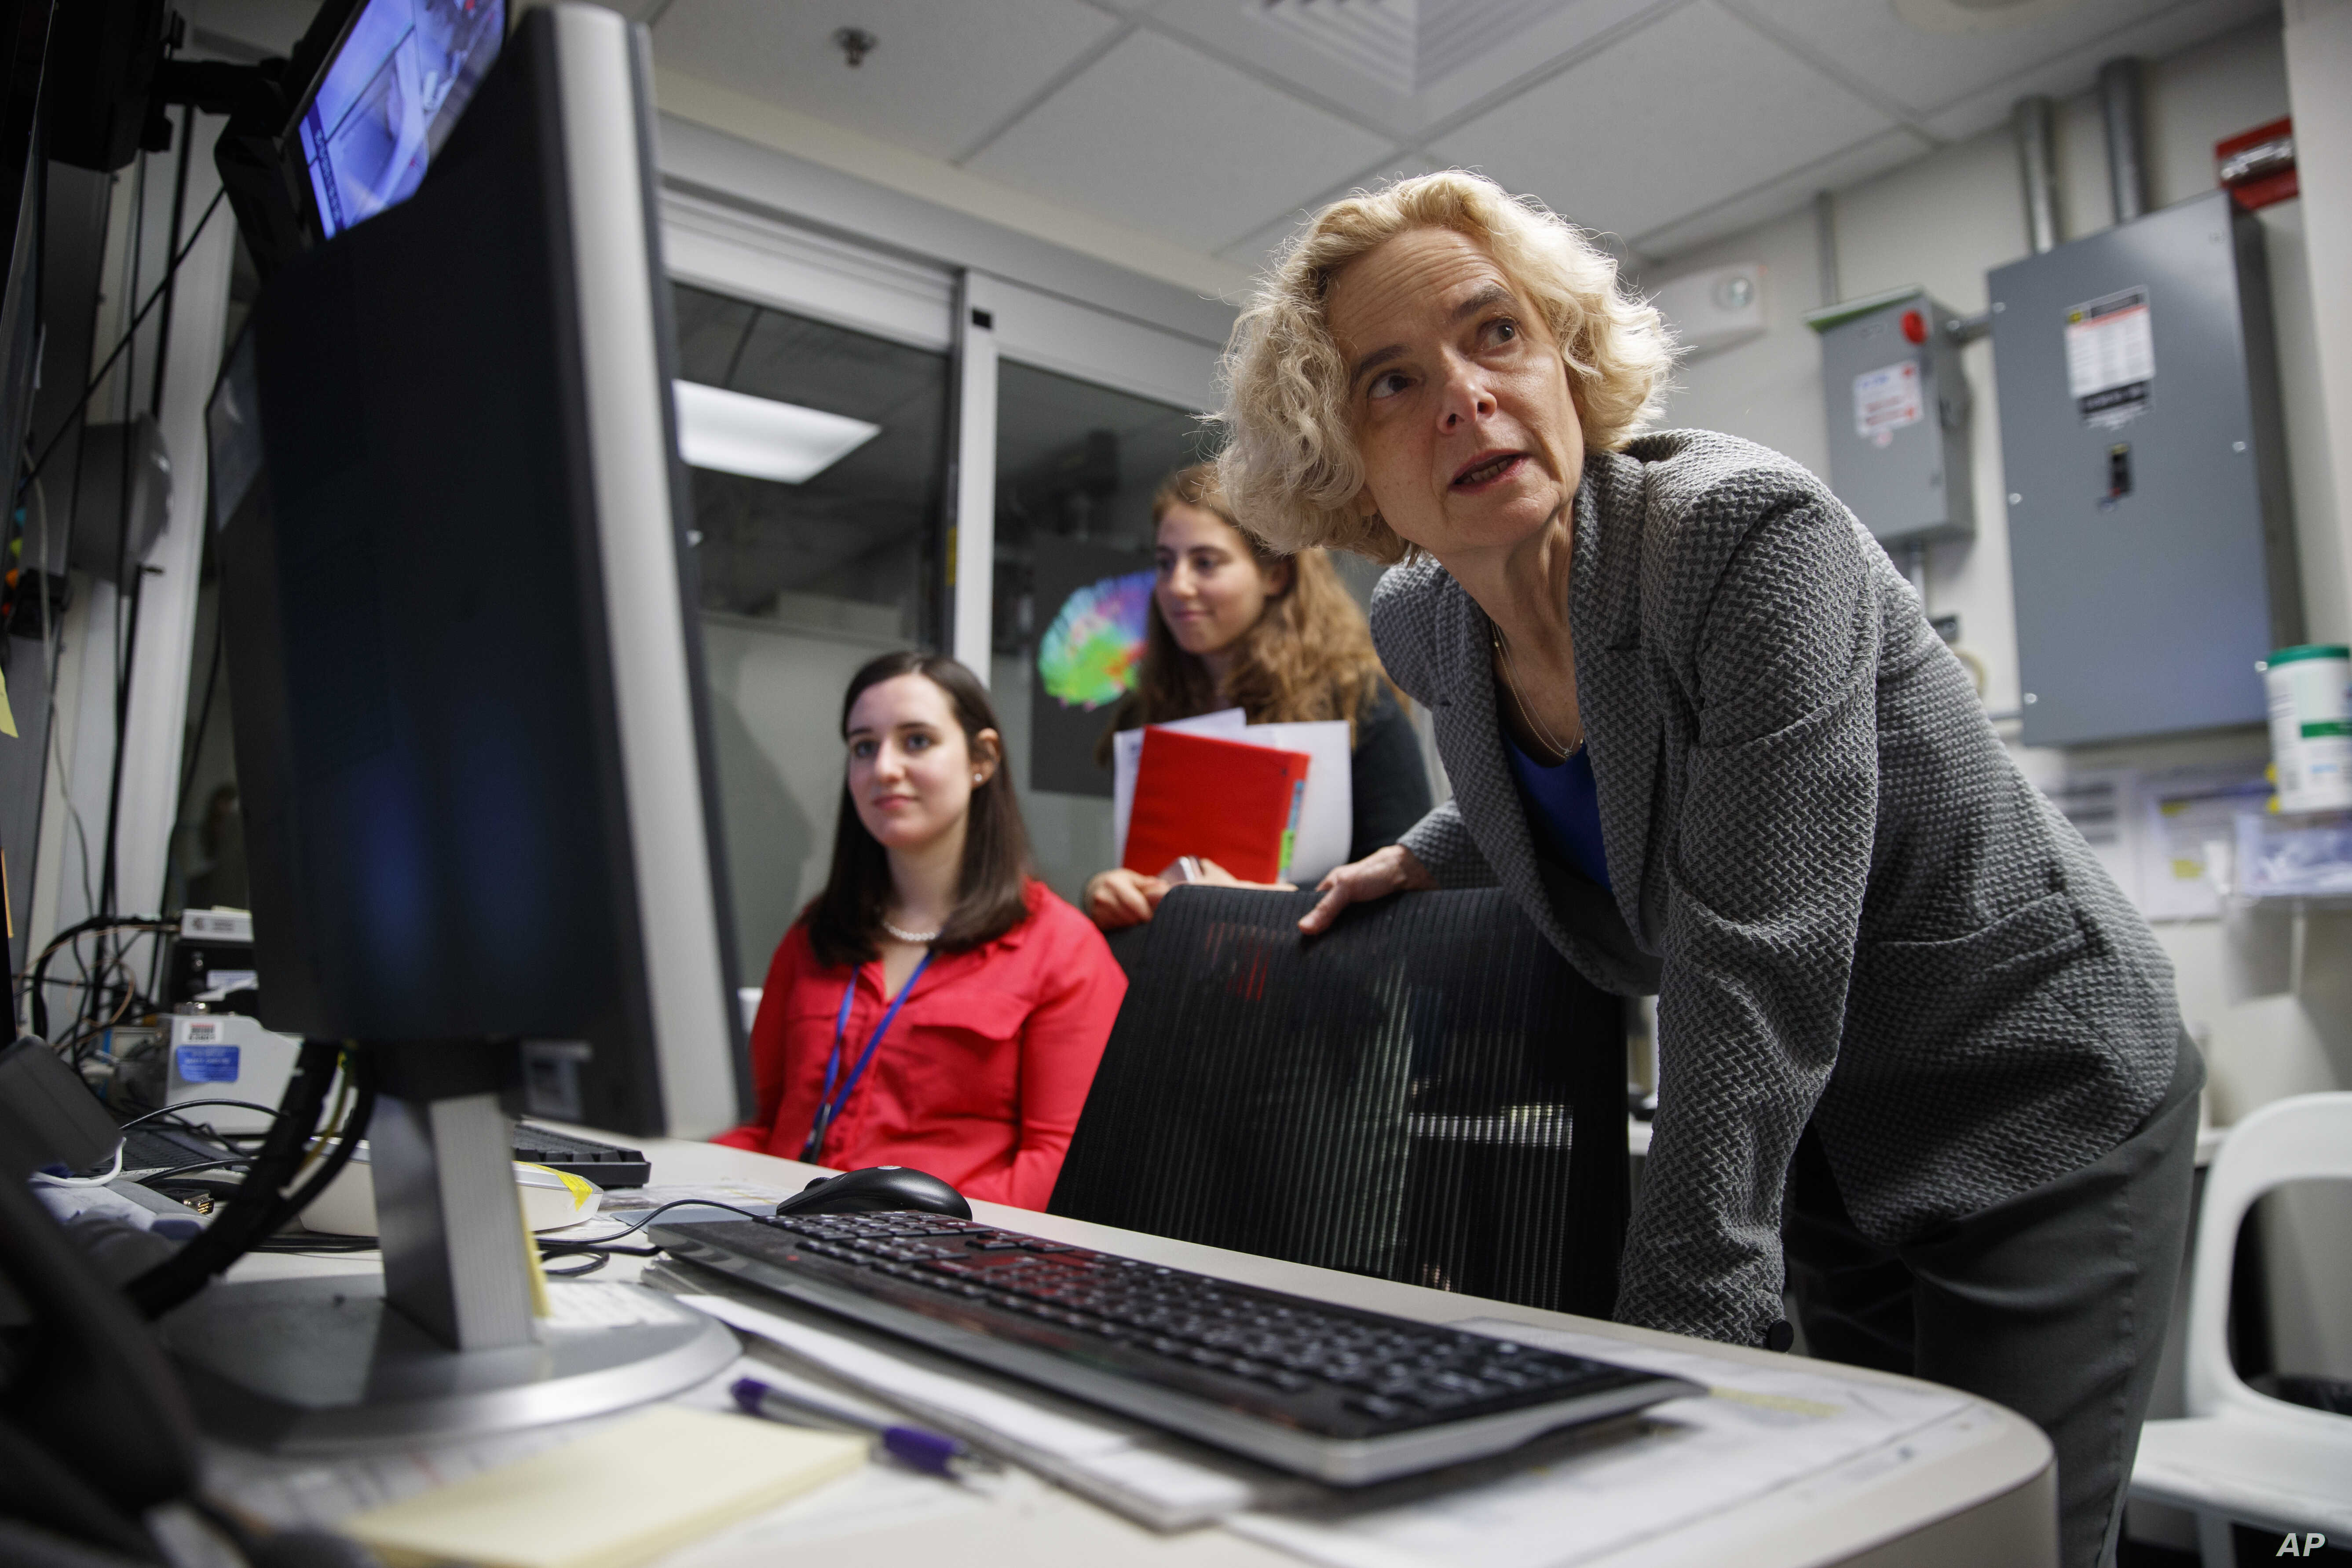 FILE - Dr. Nora Volkow, director of the National Institute on Drug Abuse, works in the MRI lab at the National Institutes of Health's research hospital in Bethesda, Maryland, May 16, 2019.